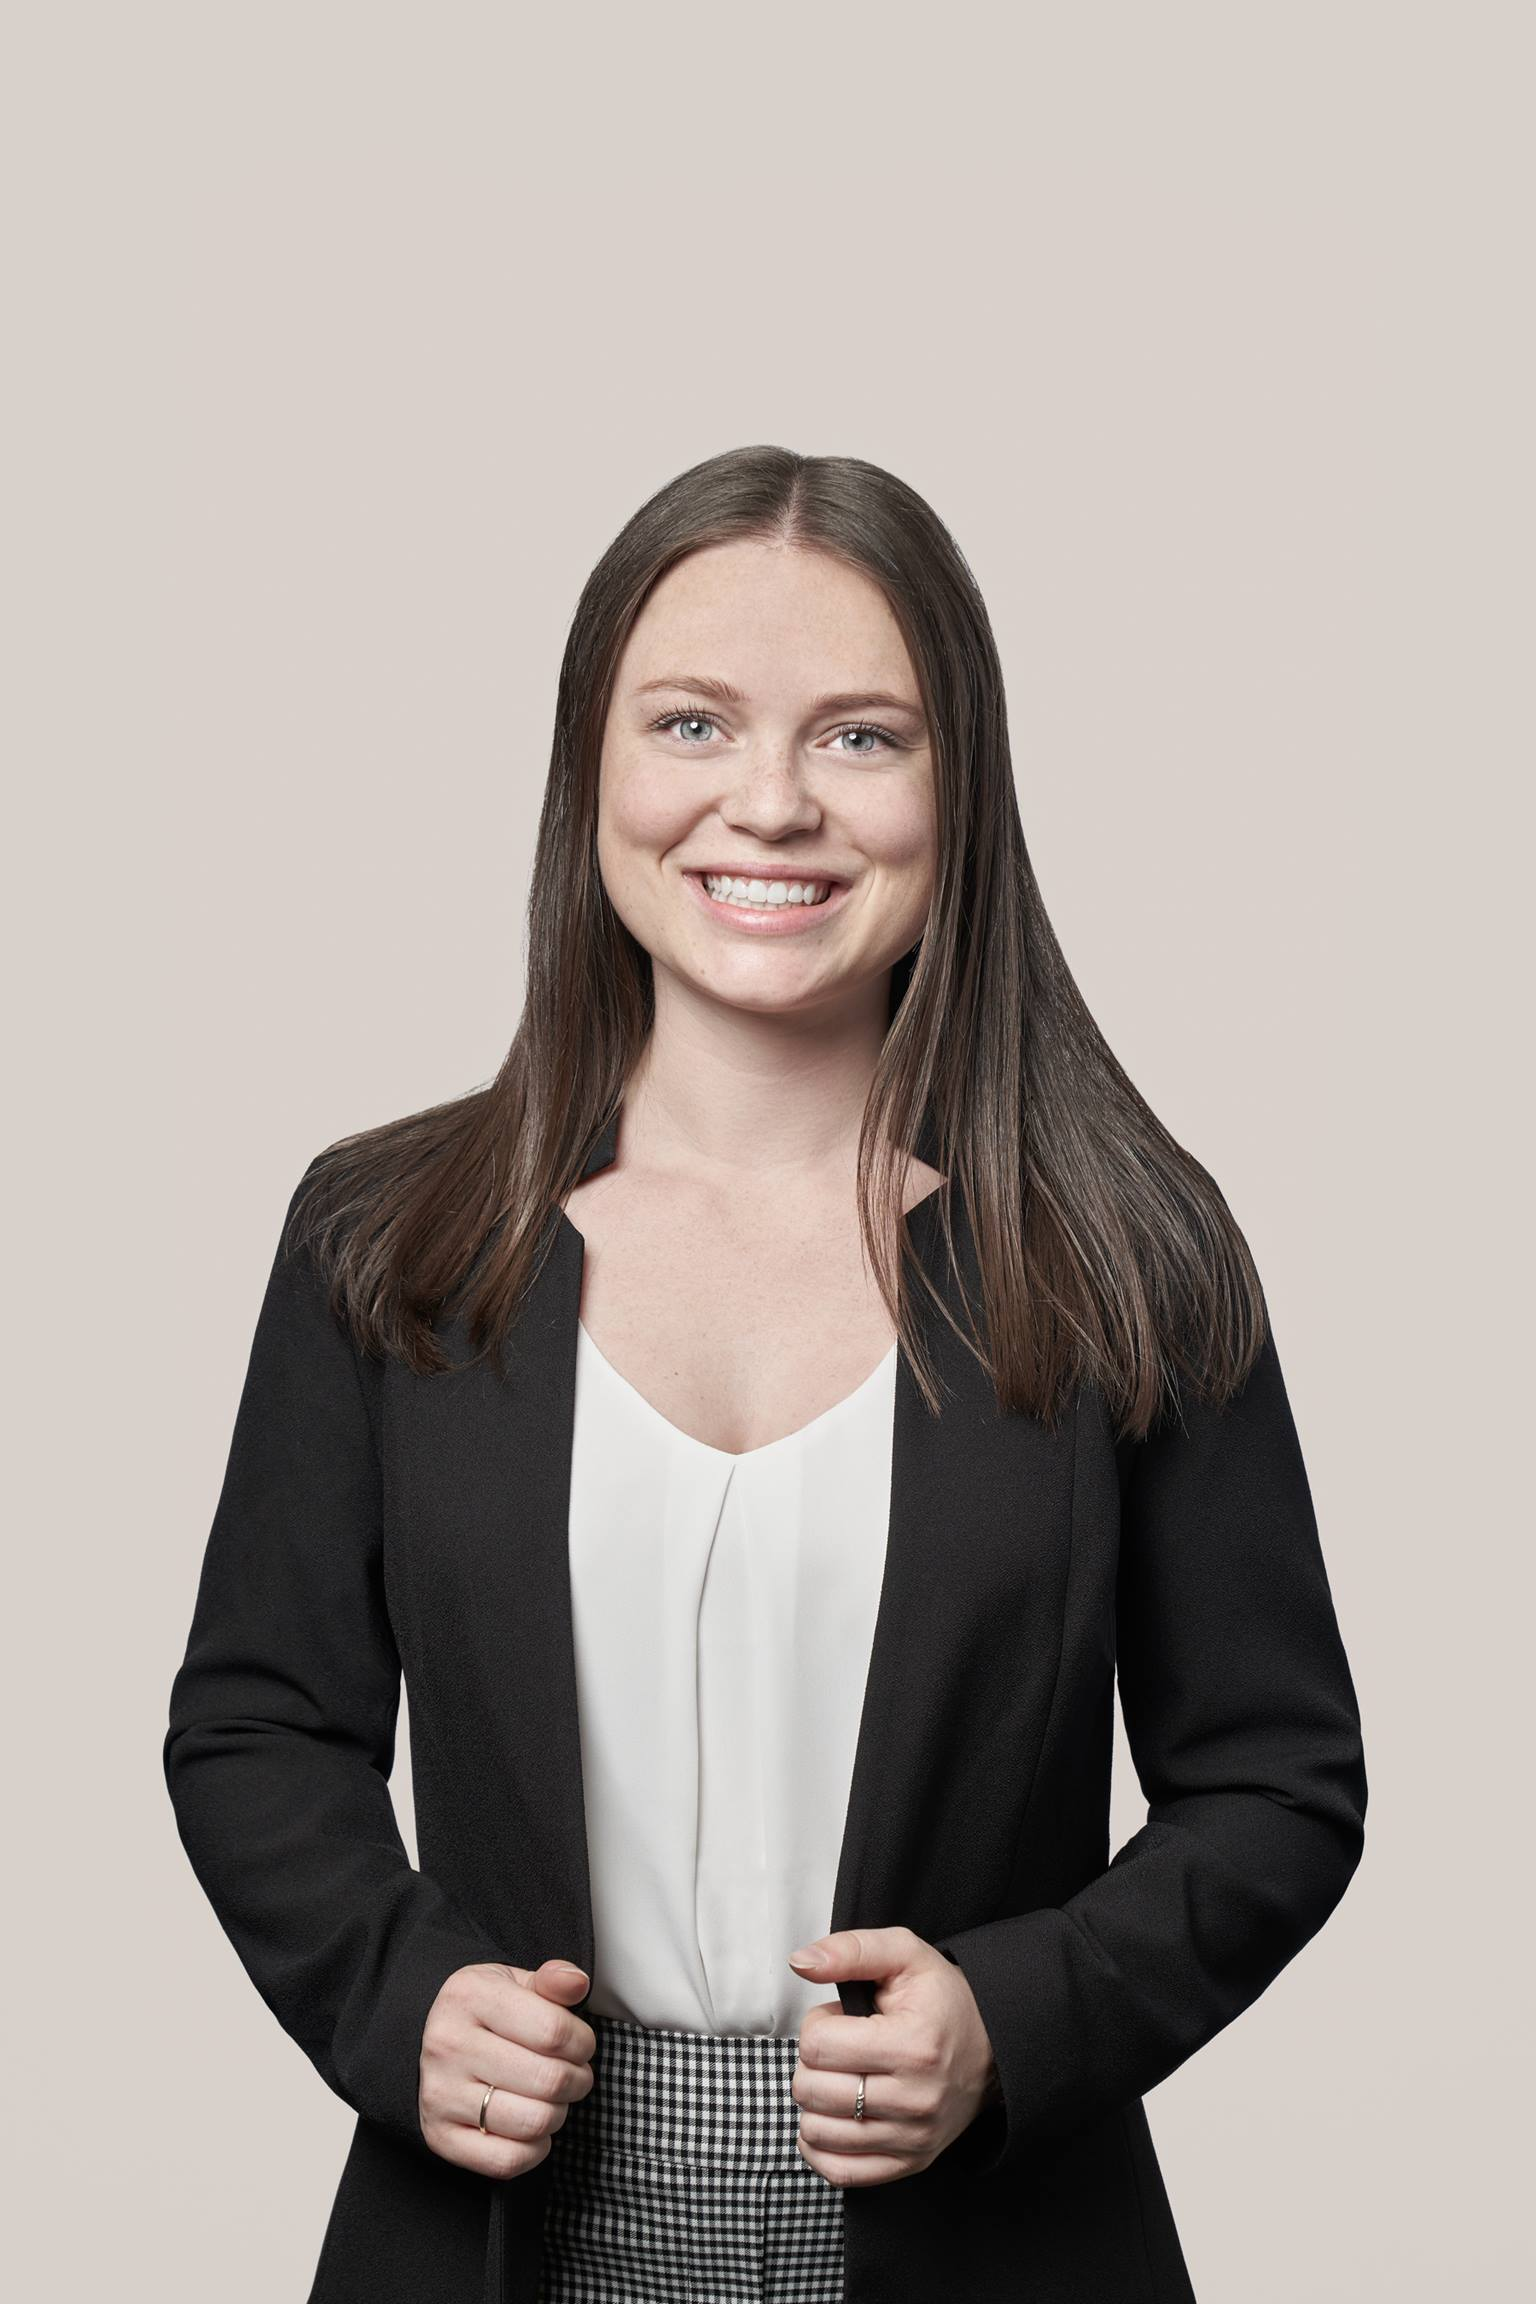 Marie-Eve Sévigny | Summer Law Student in Québec City